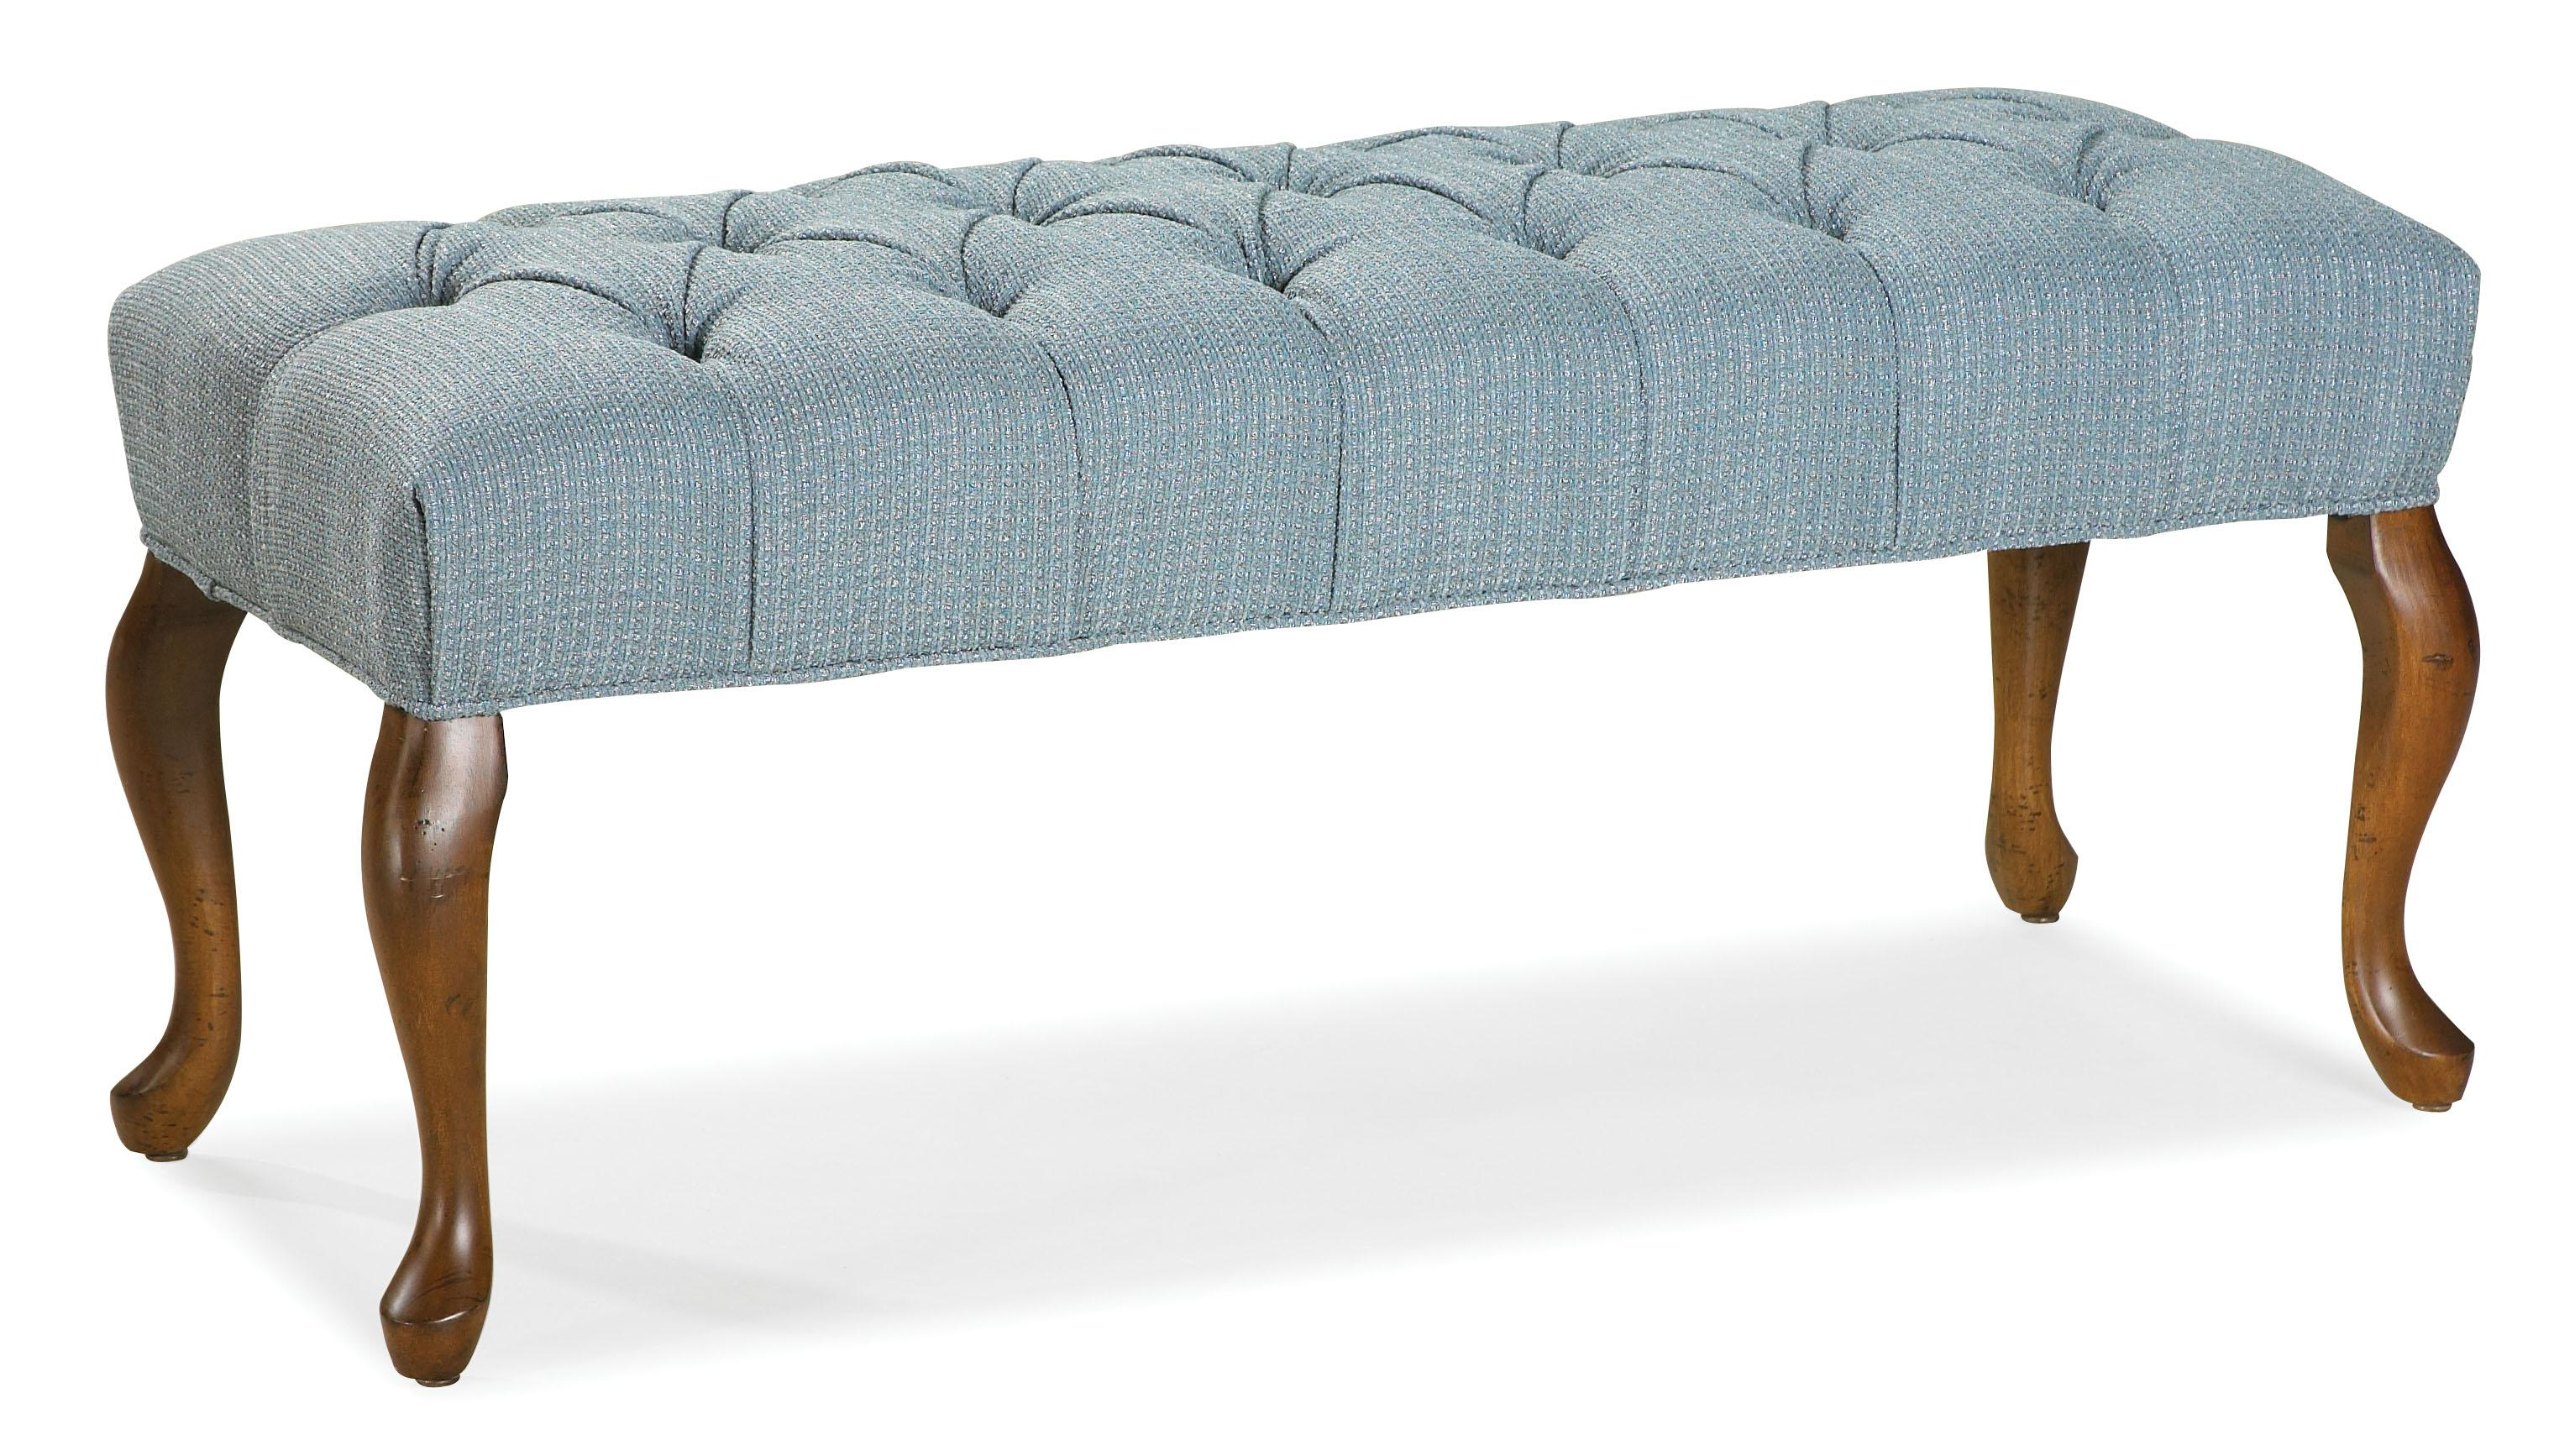 Fairfield Benches Bench - Item Number: 1630-10